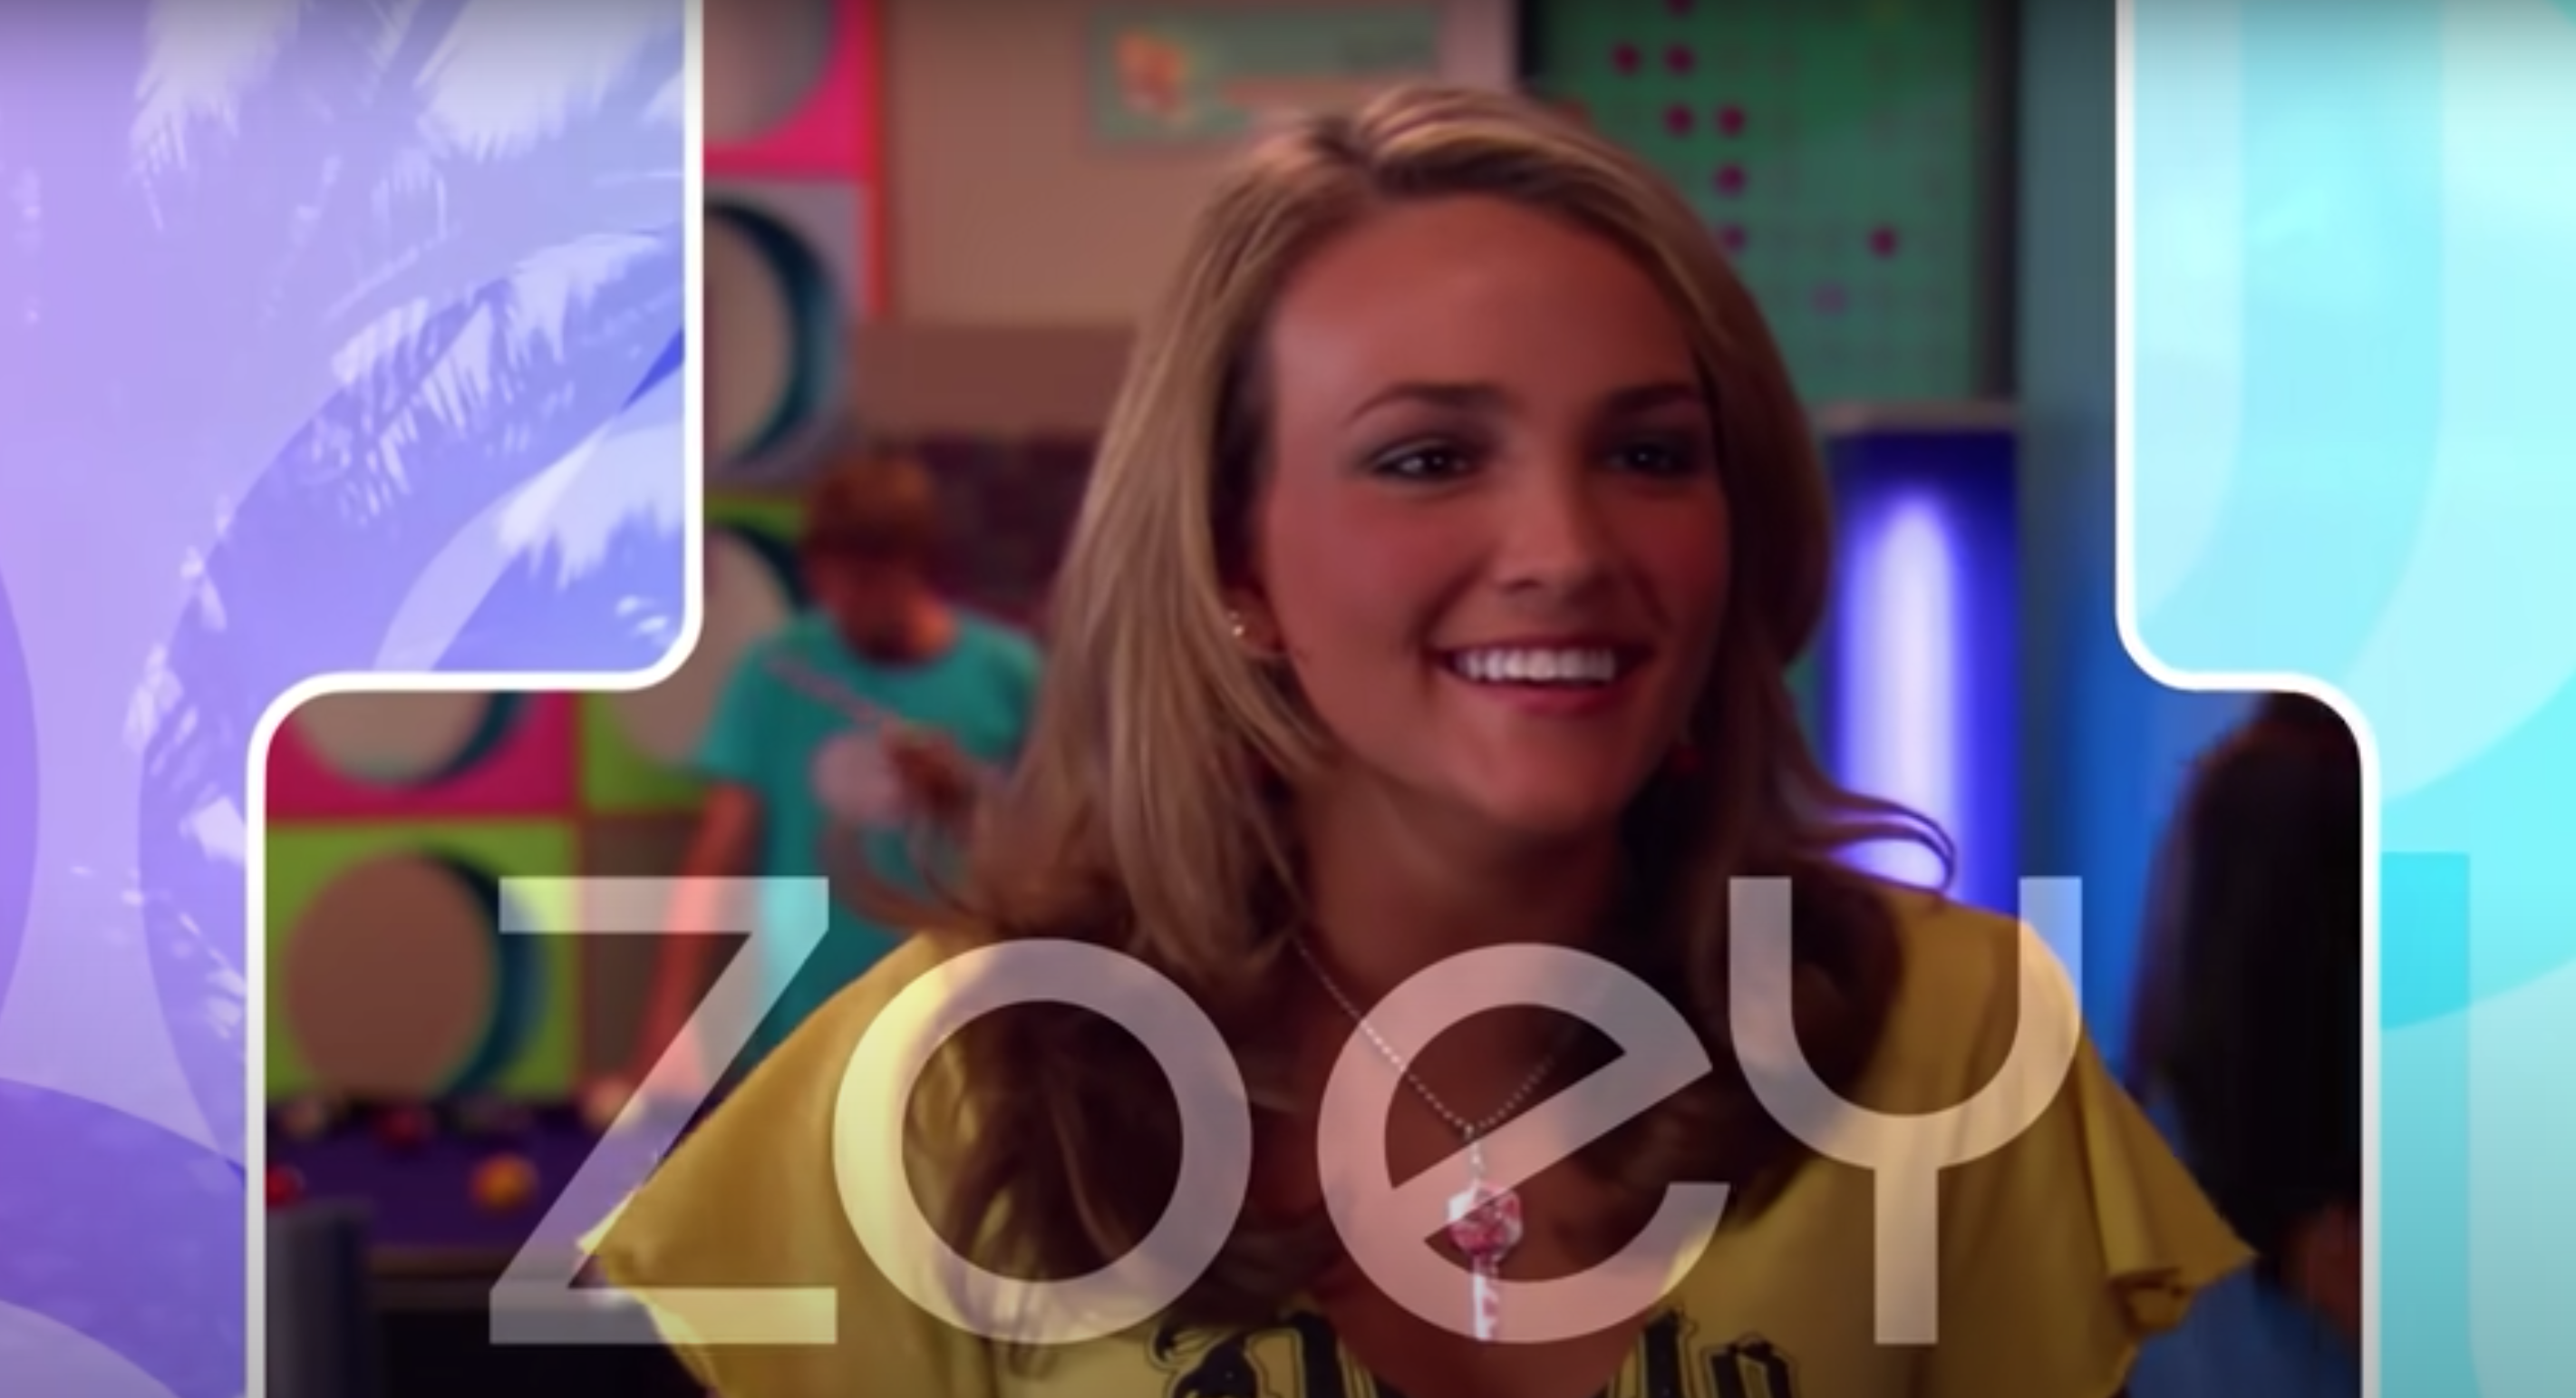 A still of the intro to Zoey 101